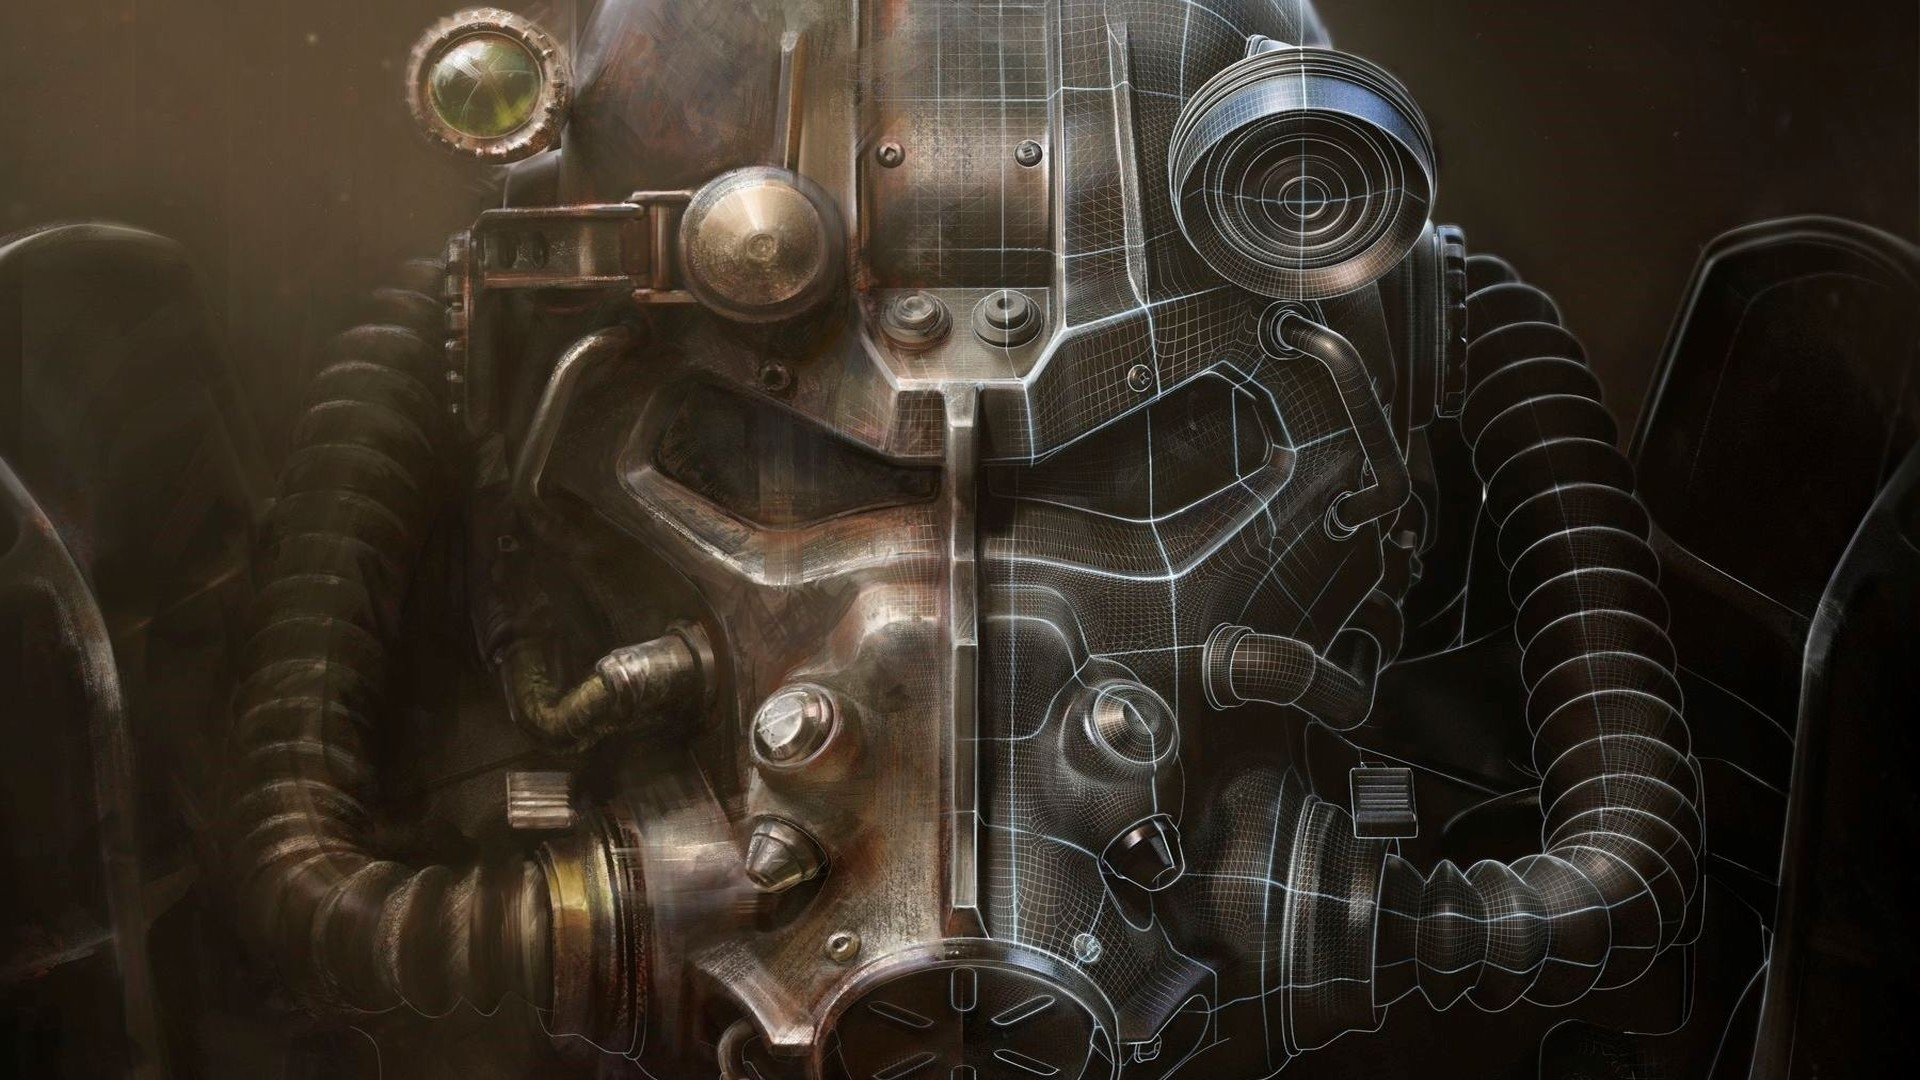 Res: 1920x1080, Fallout wallpapers HD for desktop.